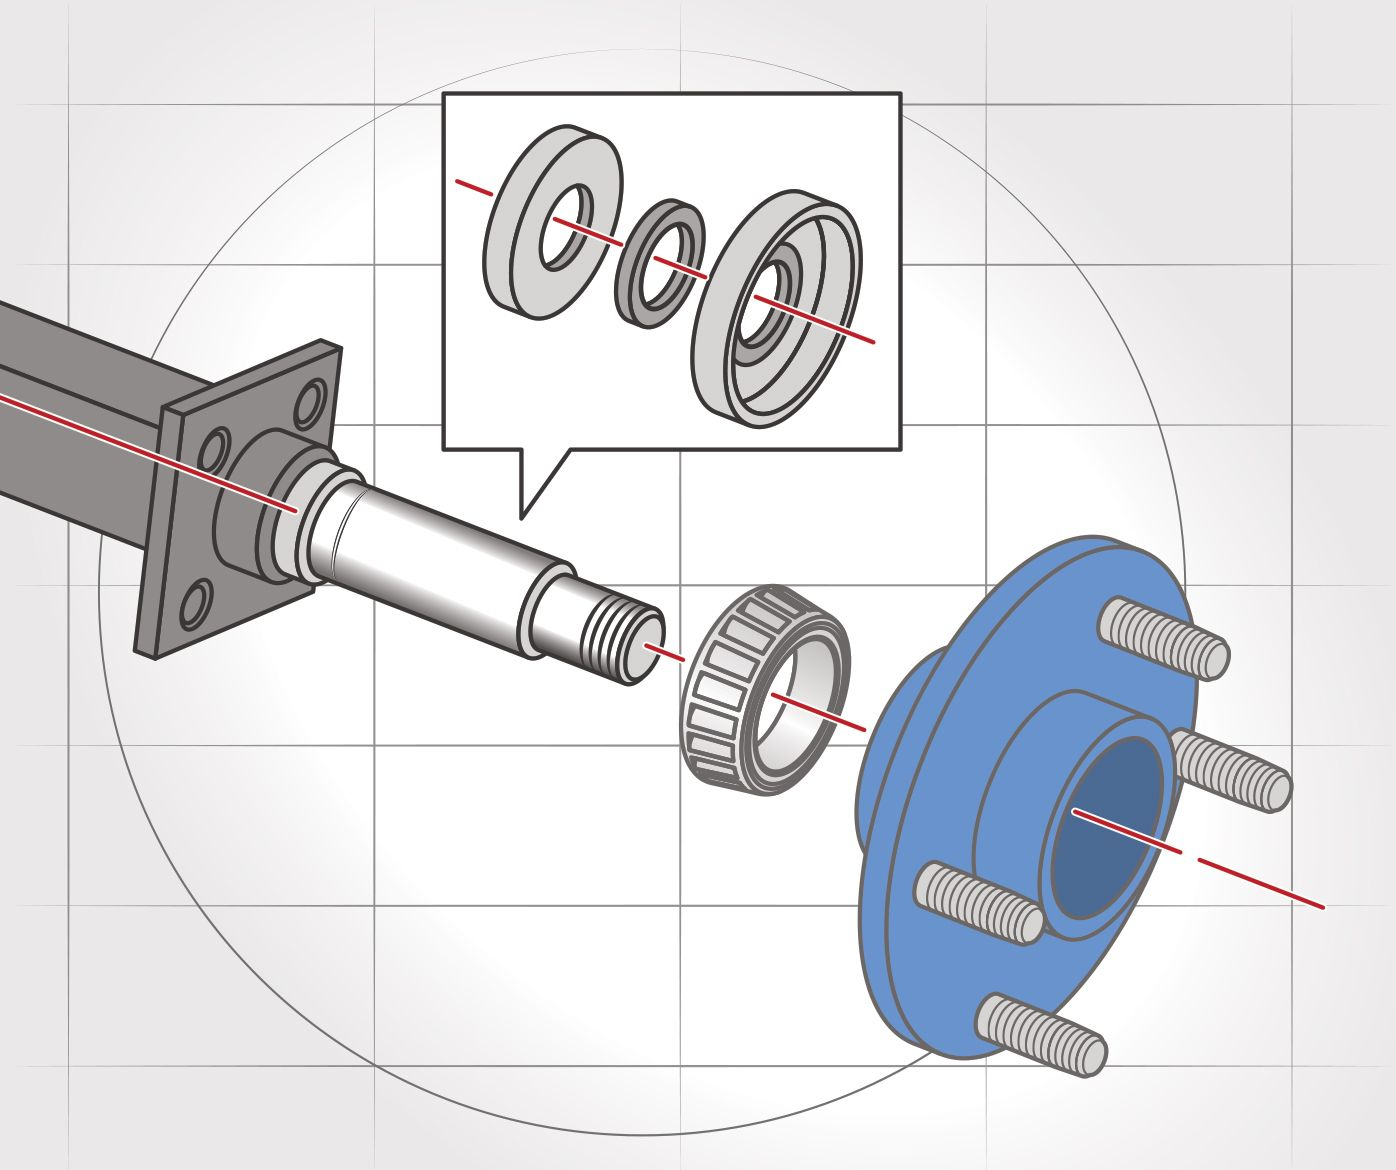 hight resolution of properly servicing your trailer wheel bearings will keep your rig rolling